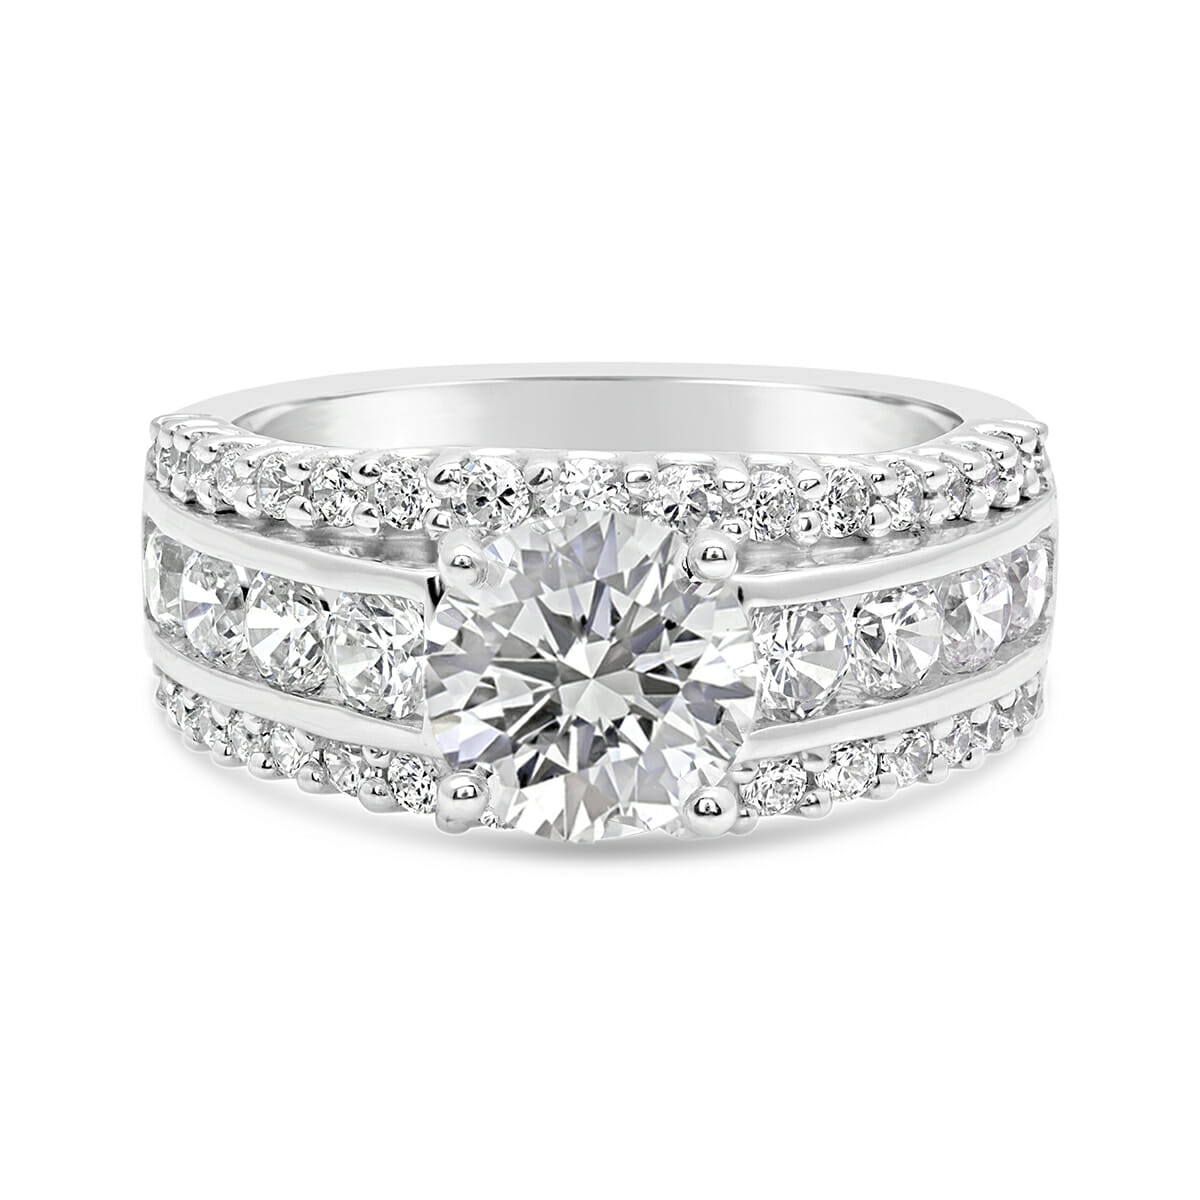 engagement stunning ring rings carat scottsdale wholesale wedding engagment pav bands online sets